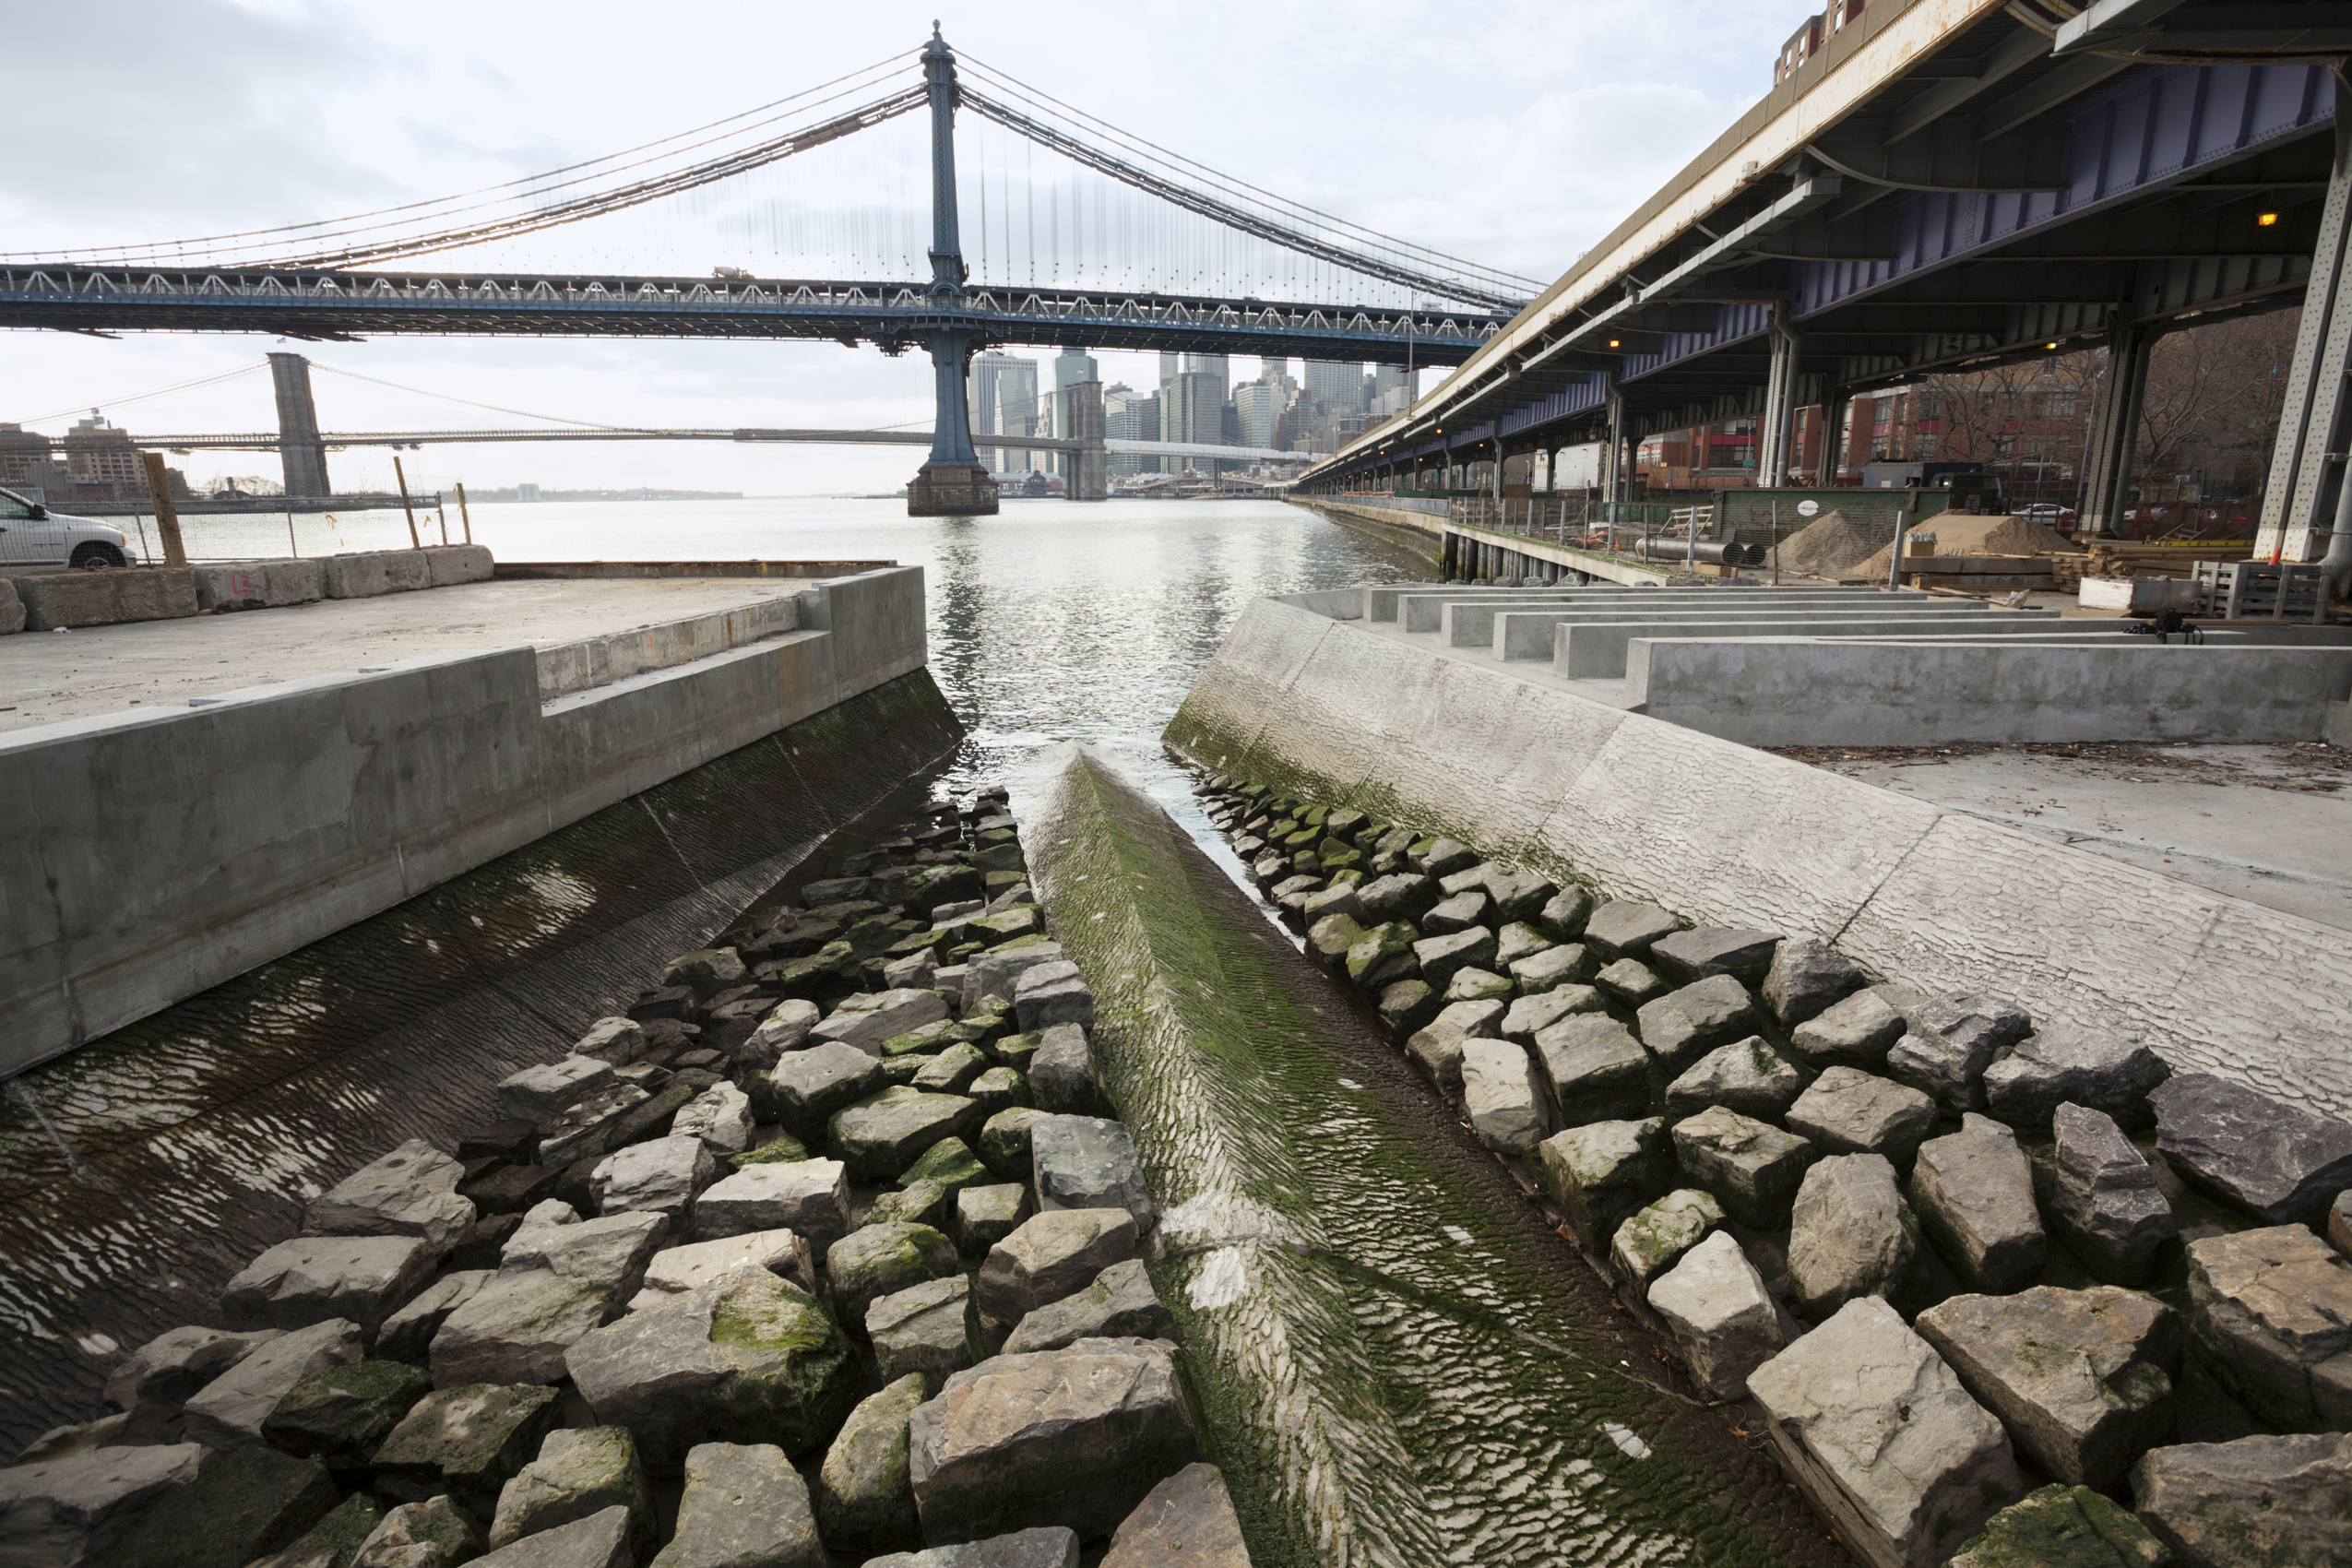 Image of the mussel habitat along the East River, at the East River Waterfront Park